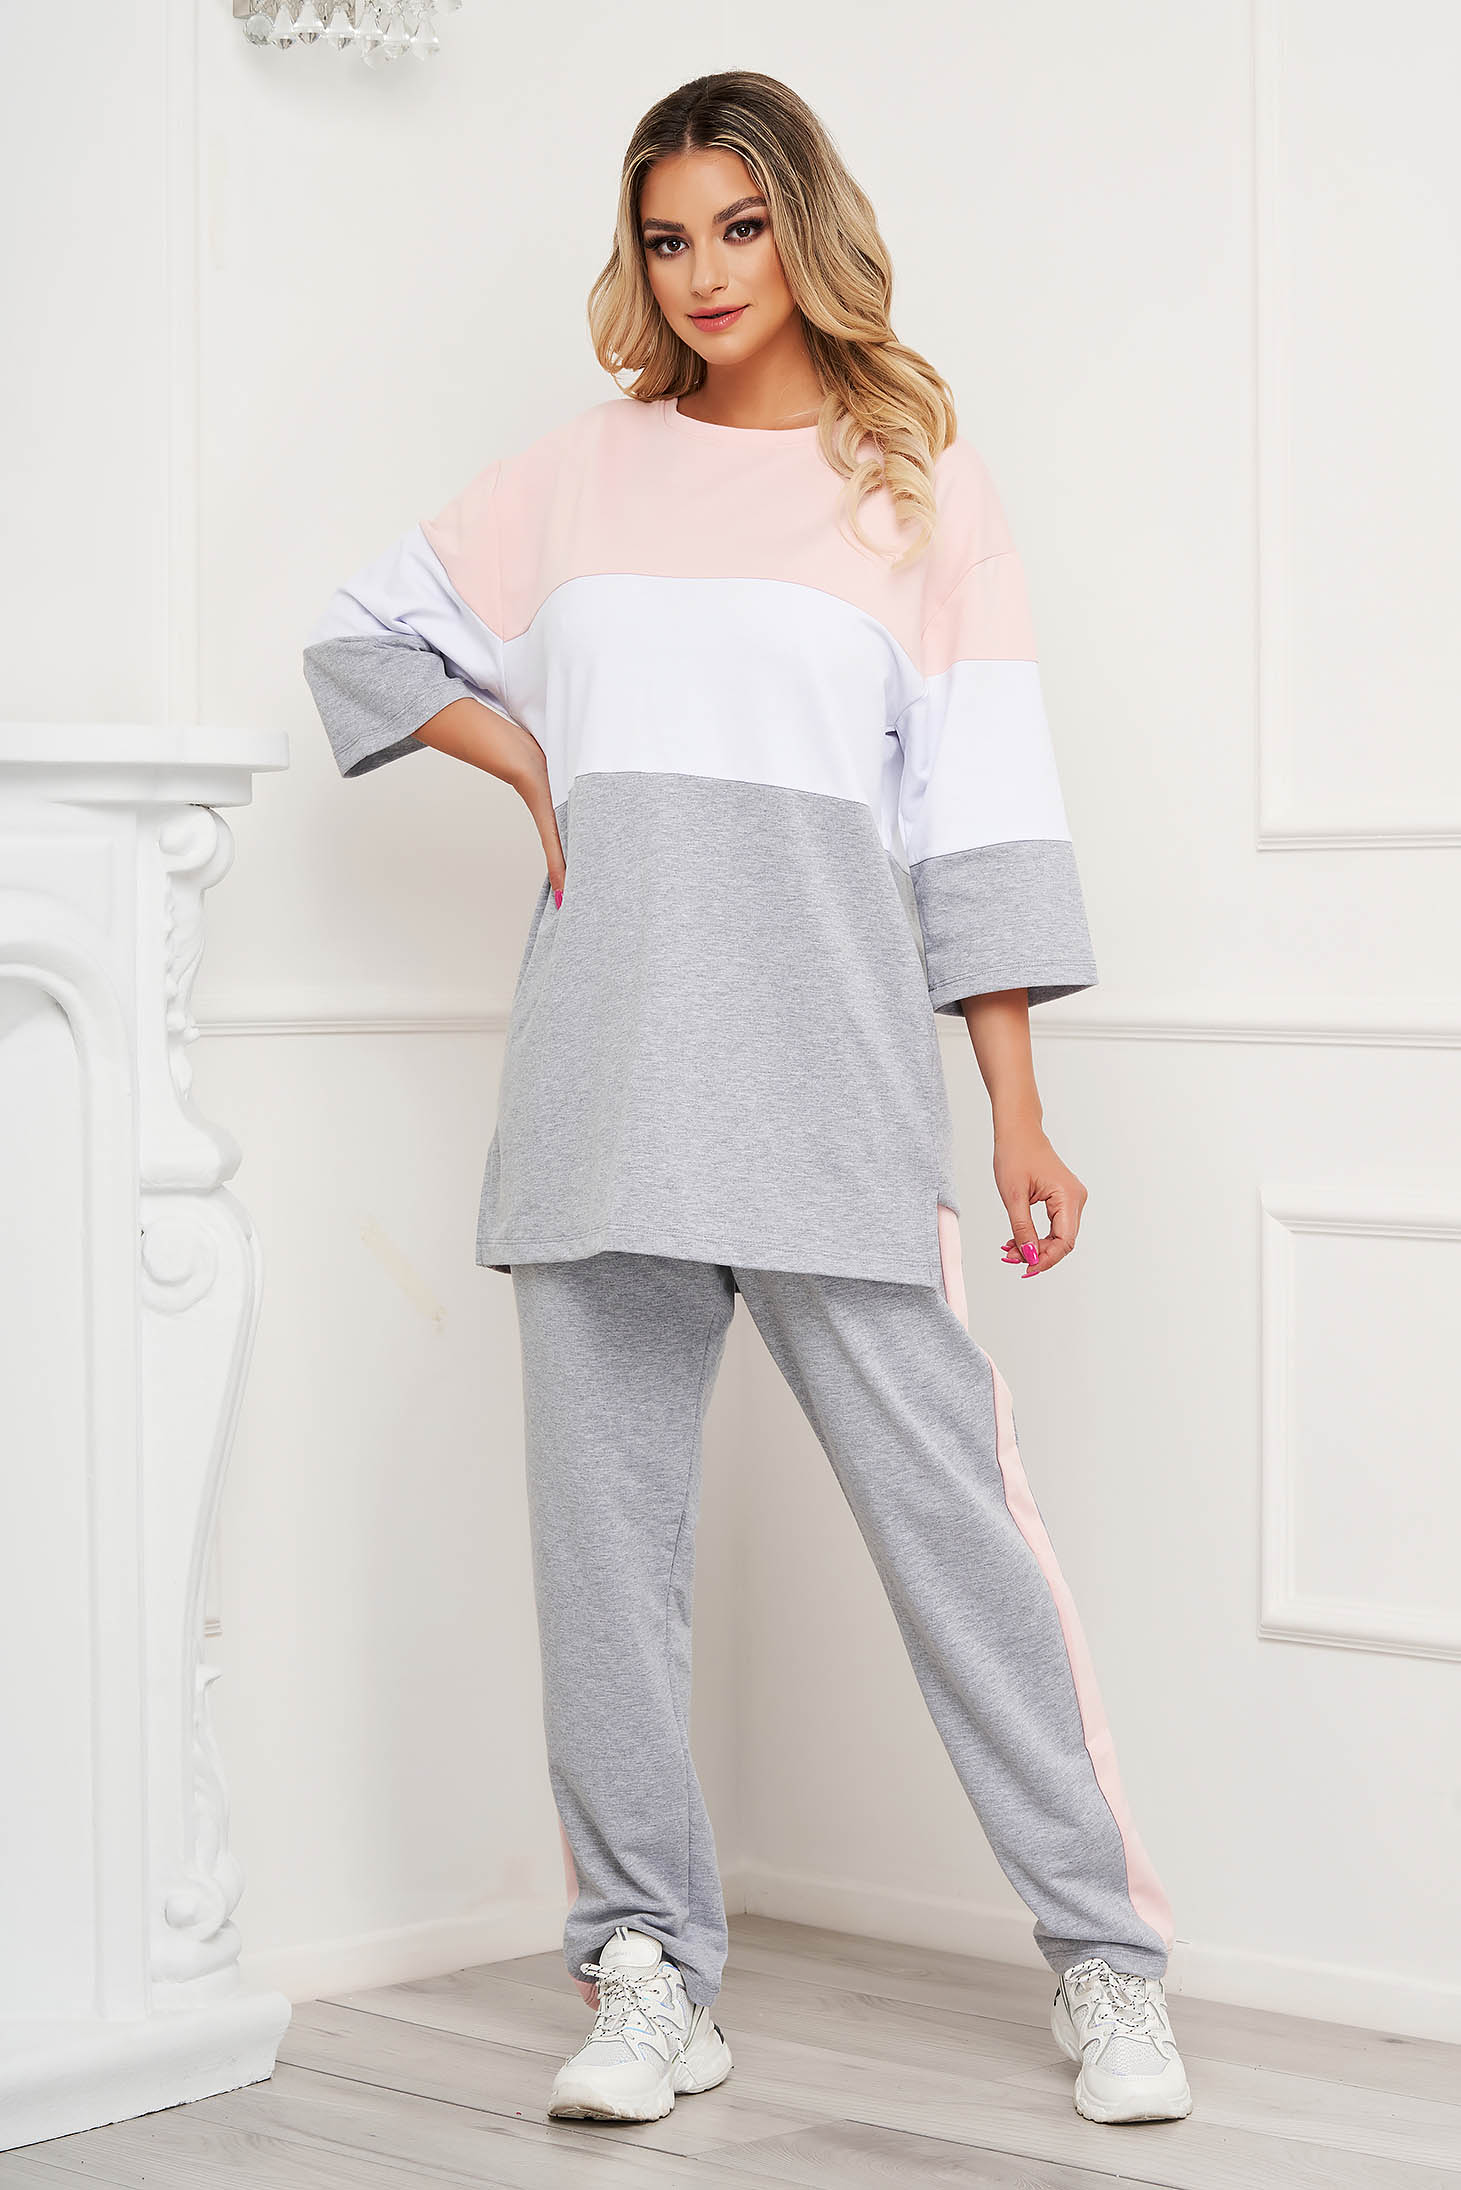 Lightpink sport 2 pieces with stripes cotton loose fit